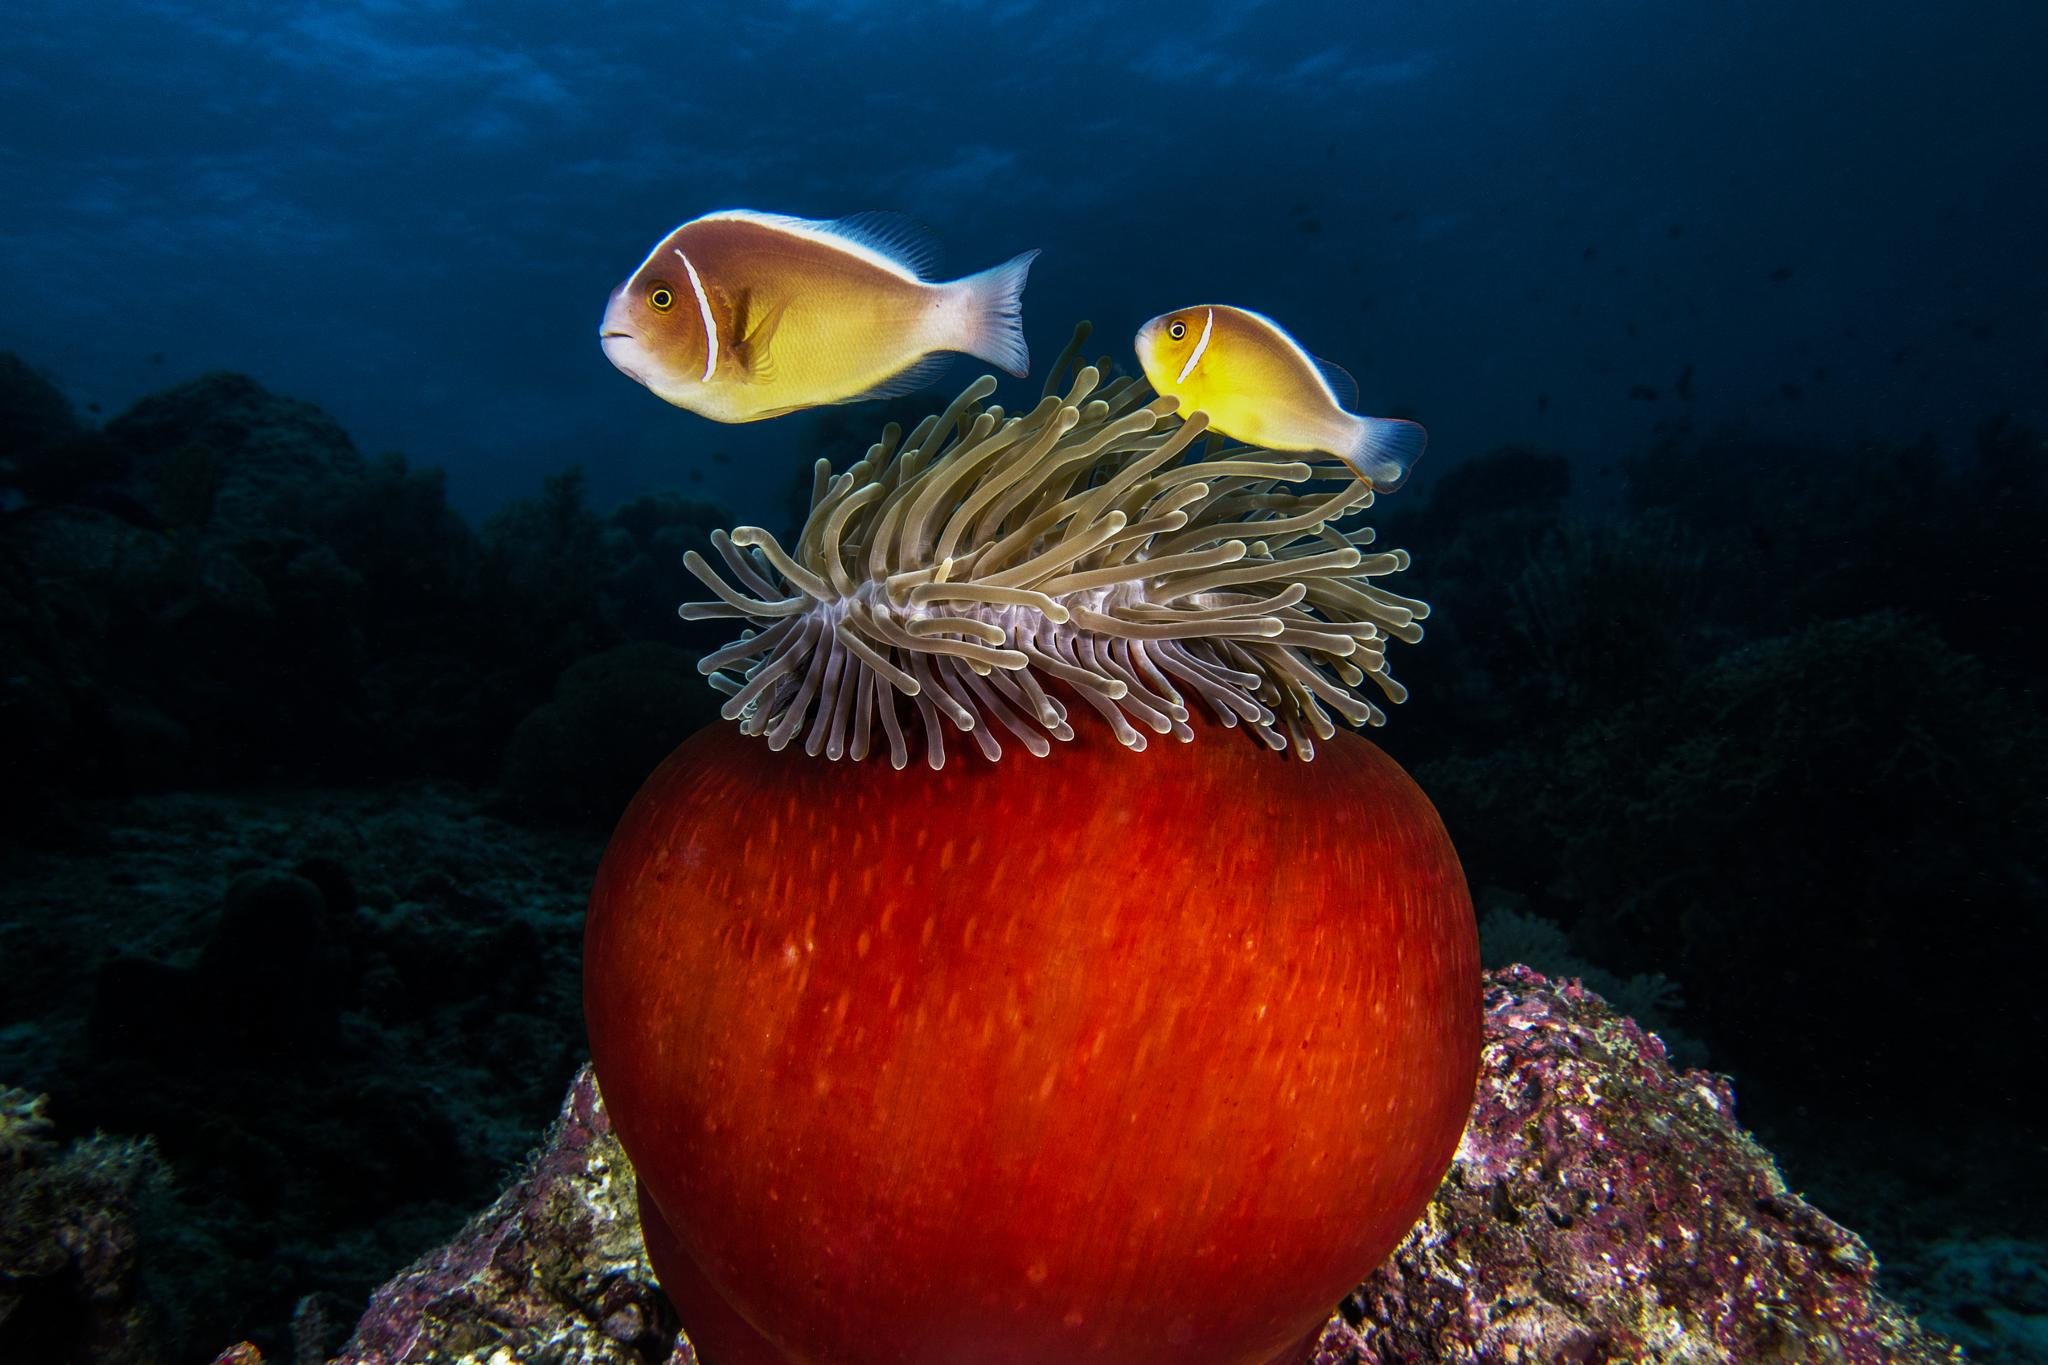 A sea anemone and clown fish by rafi amar